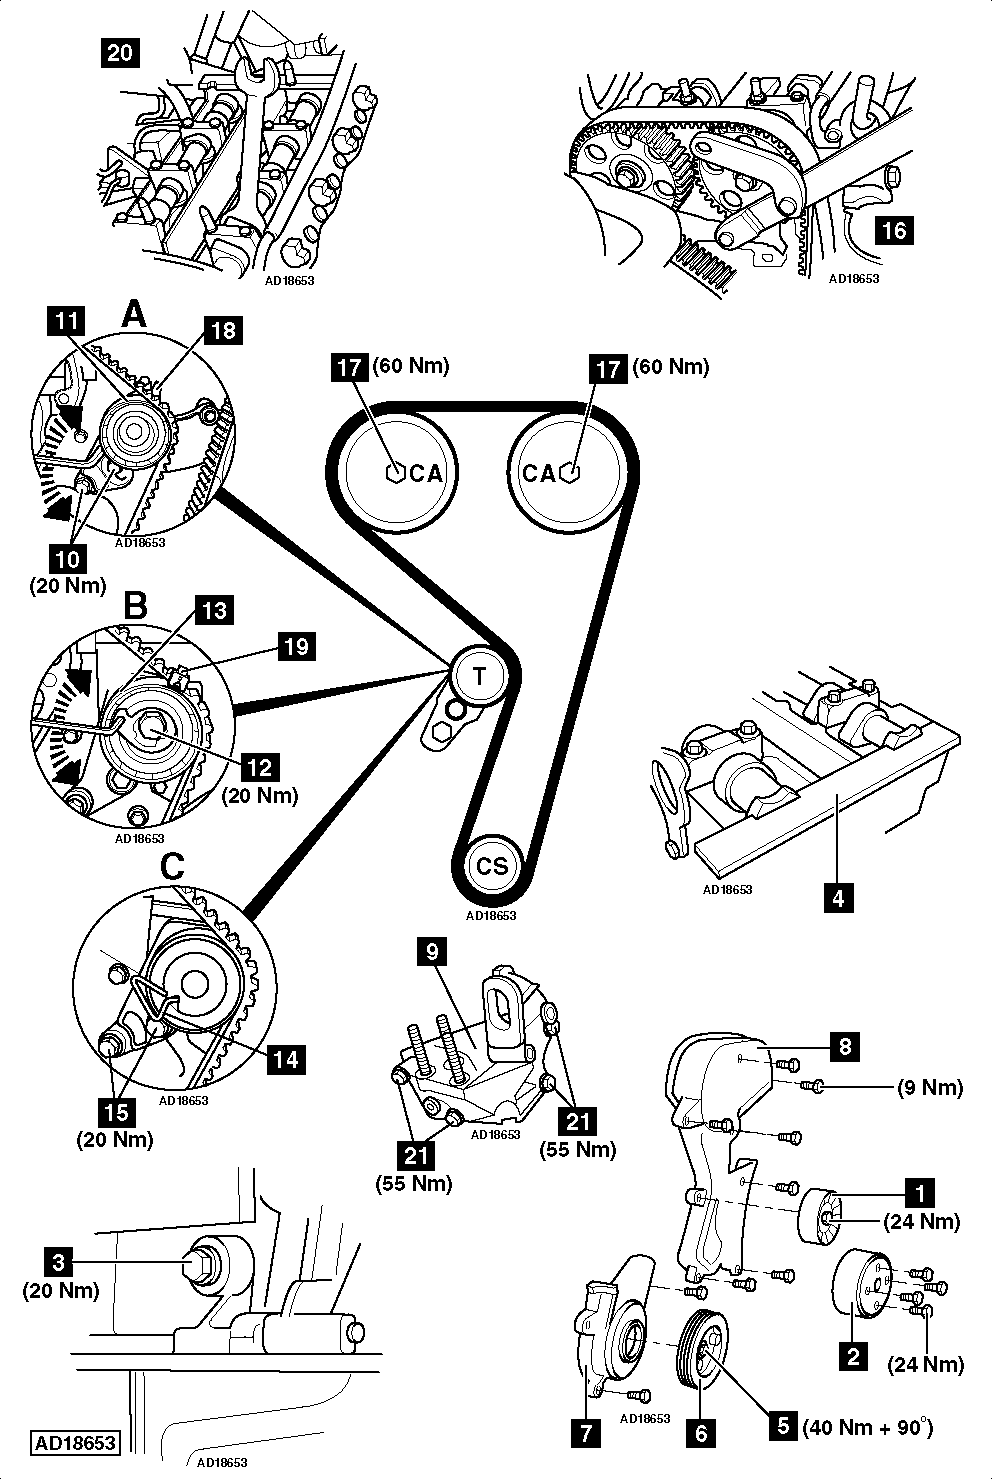 hight resolution of how to replace timing belt on ford focus 1 4i 1998 2005 ford taurus serpentine belt diagram 2000 ford focus serpentine belt diagram